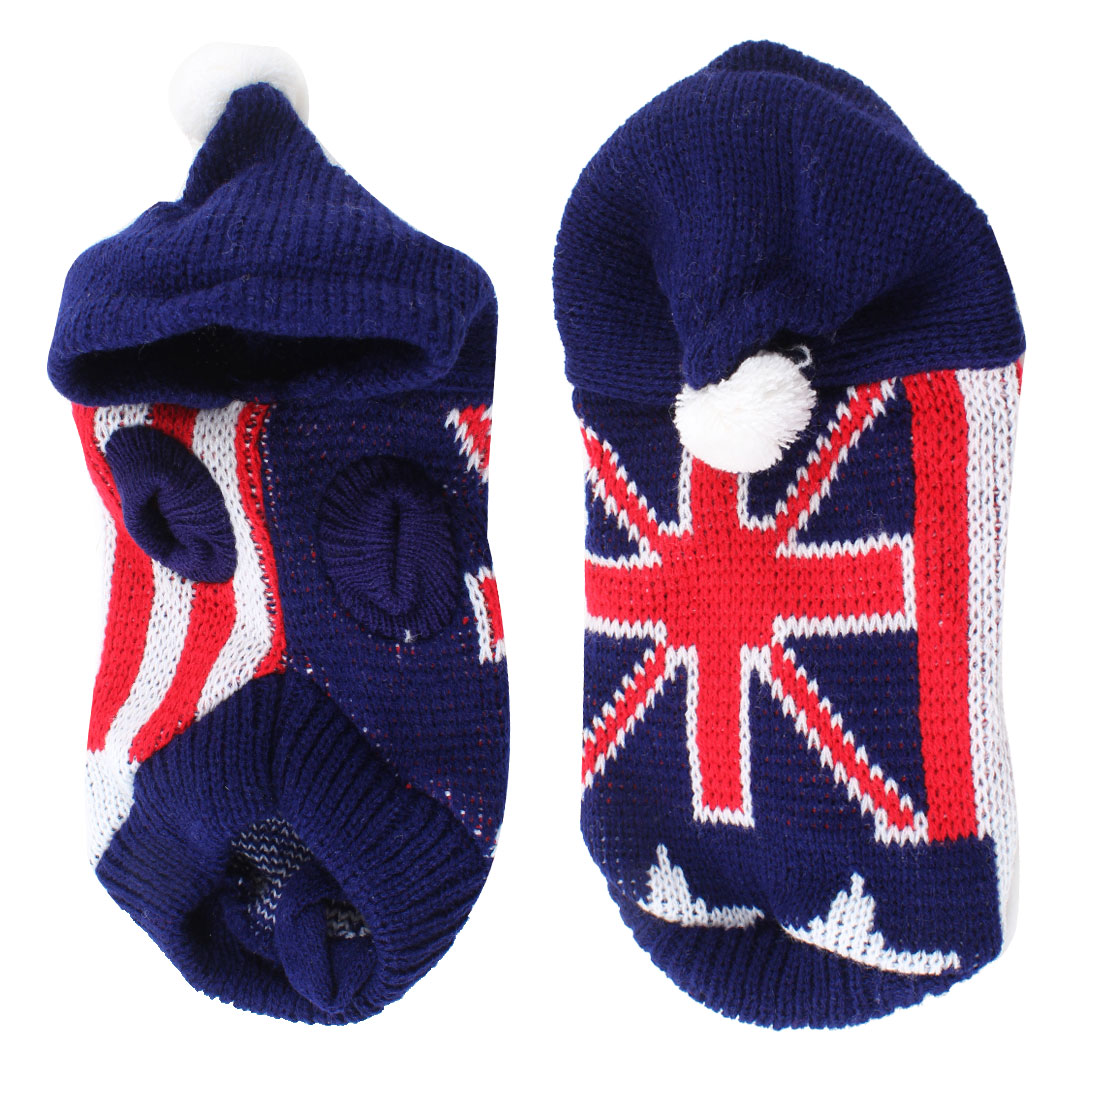 Turtleneck Knit England Flag Print Pet Dog Sweater Clothing Apparel Blue Red XS